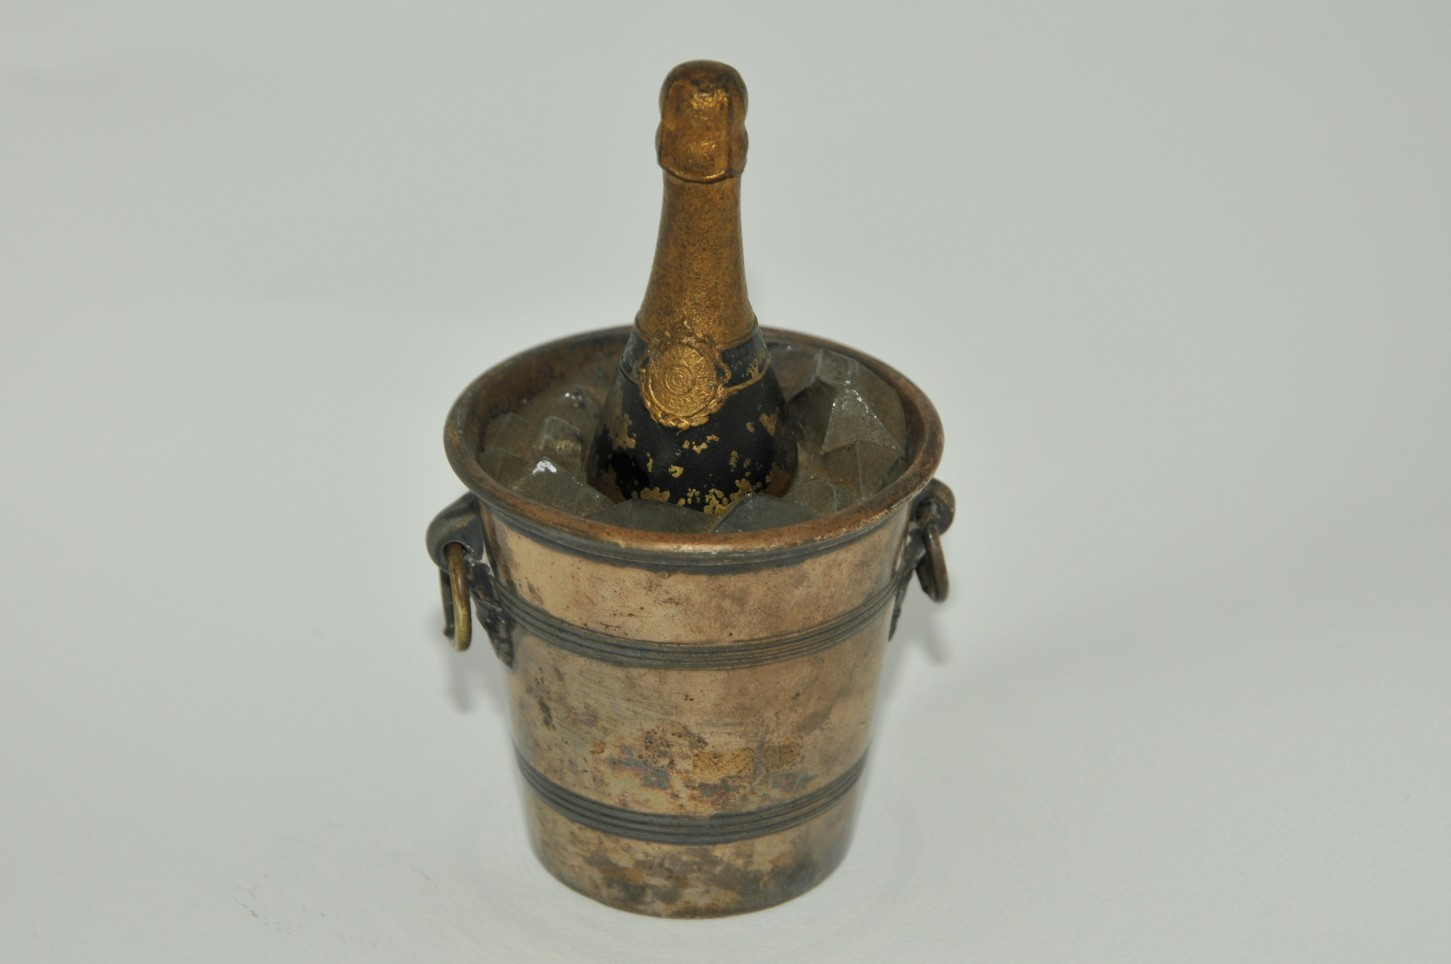 Inkwell bucket and bottle of Champagne